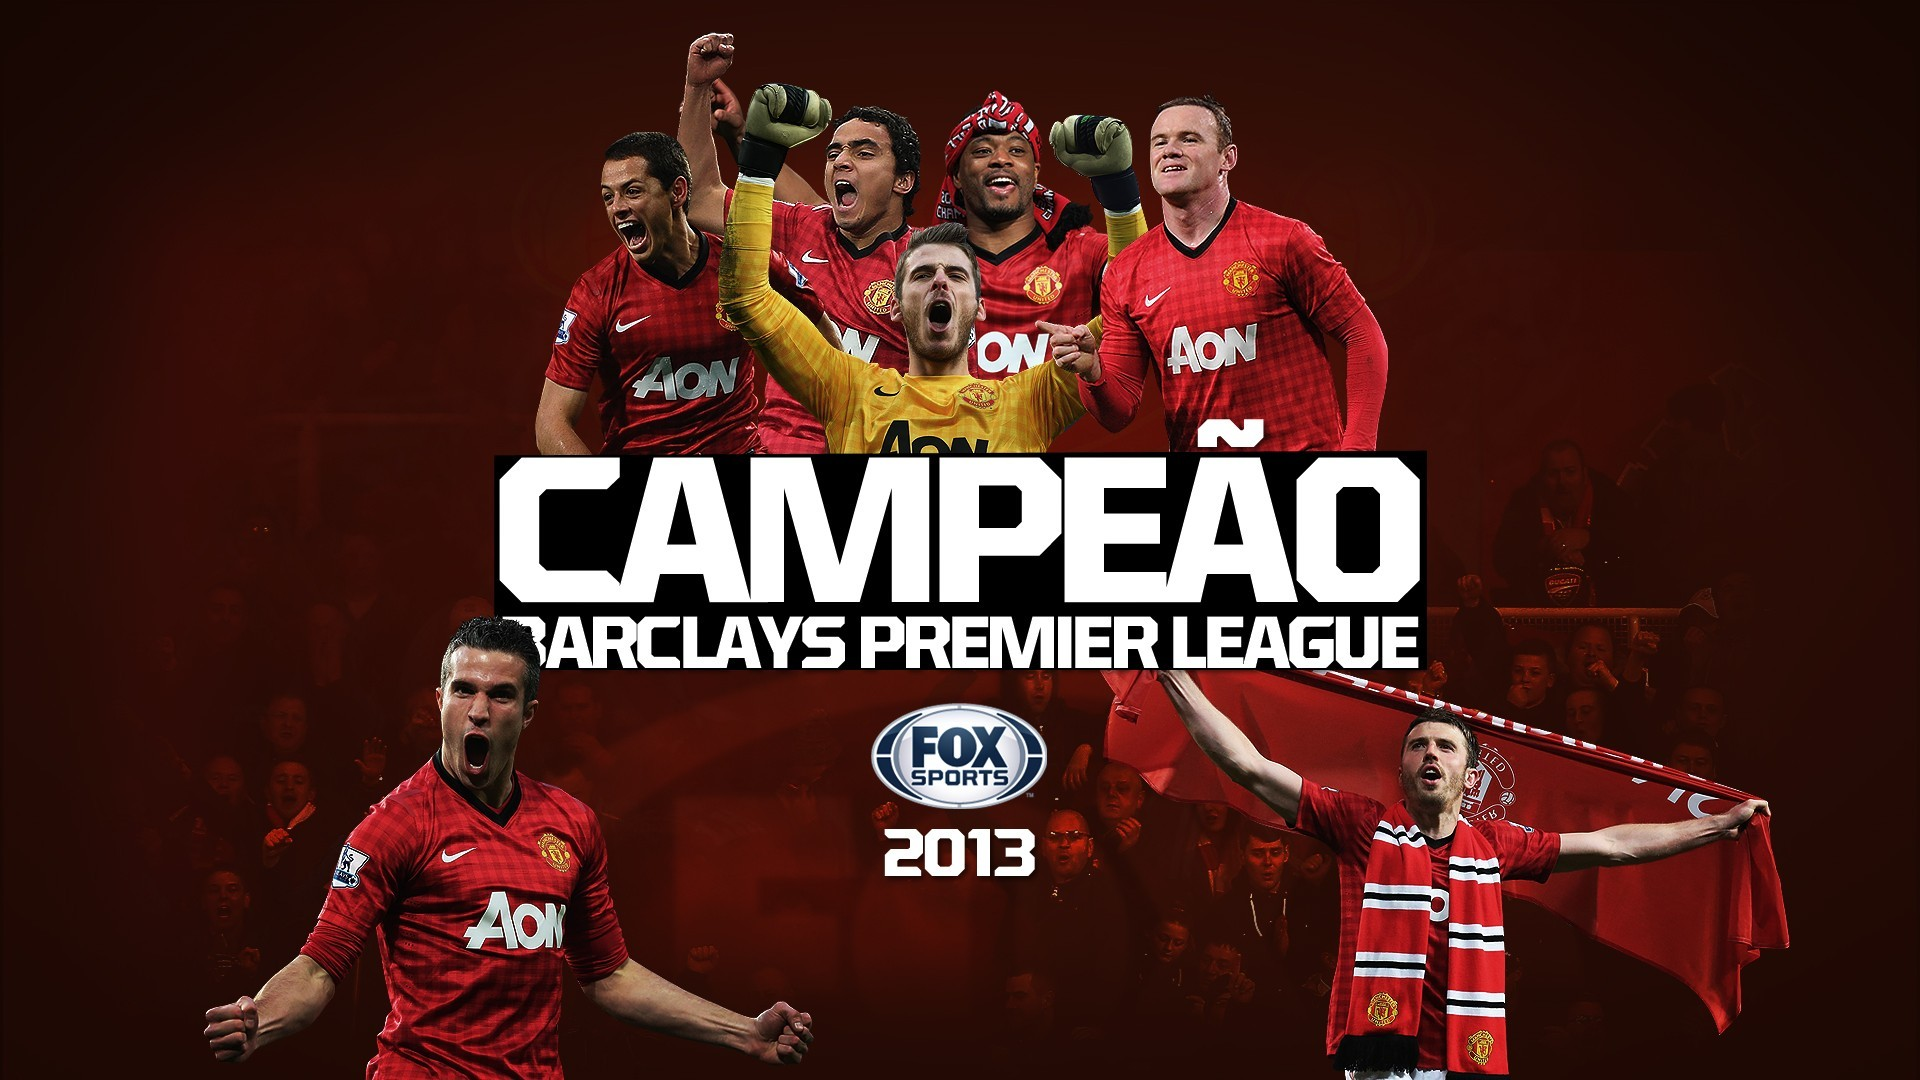 1920x1080 Football Manchester United Fc Red Devils Champions Teams Utd Premier League  Soccer Sports #wallpapers #